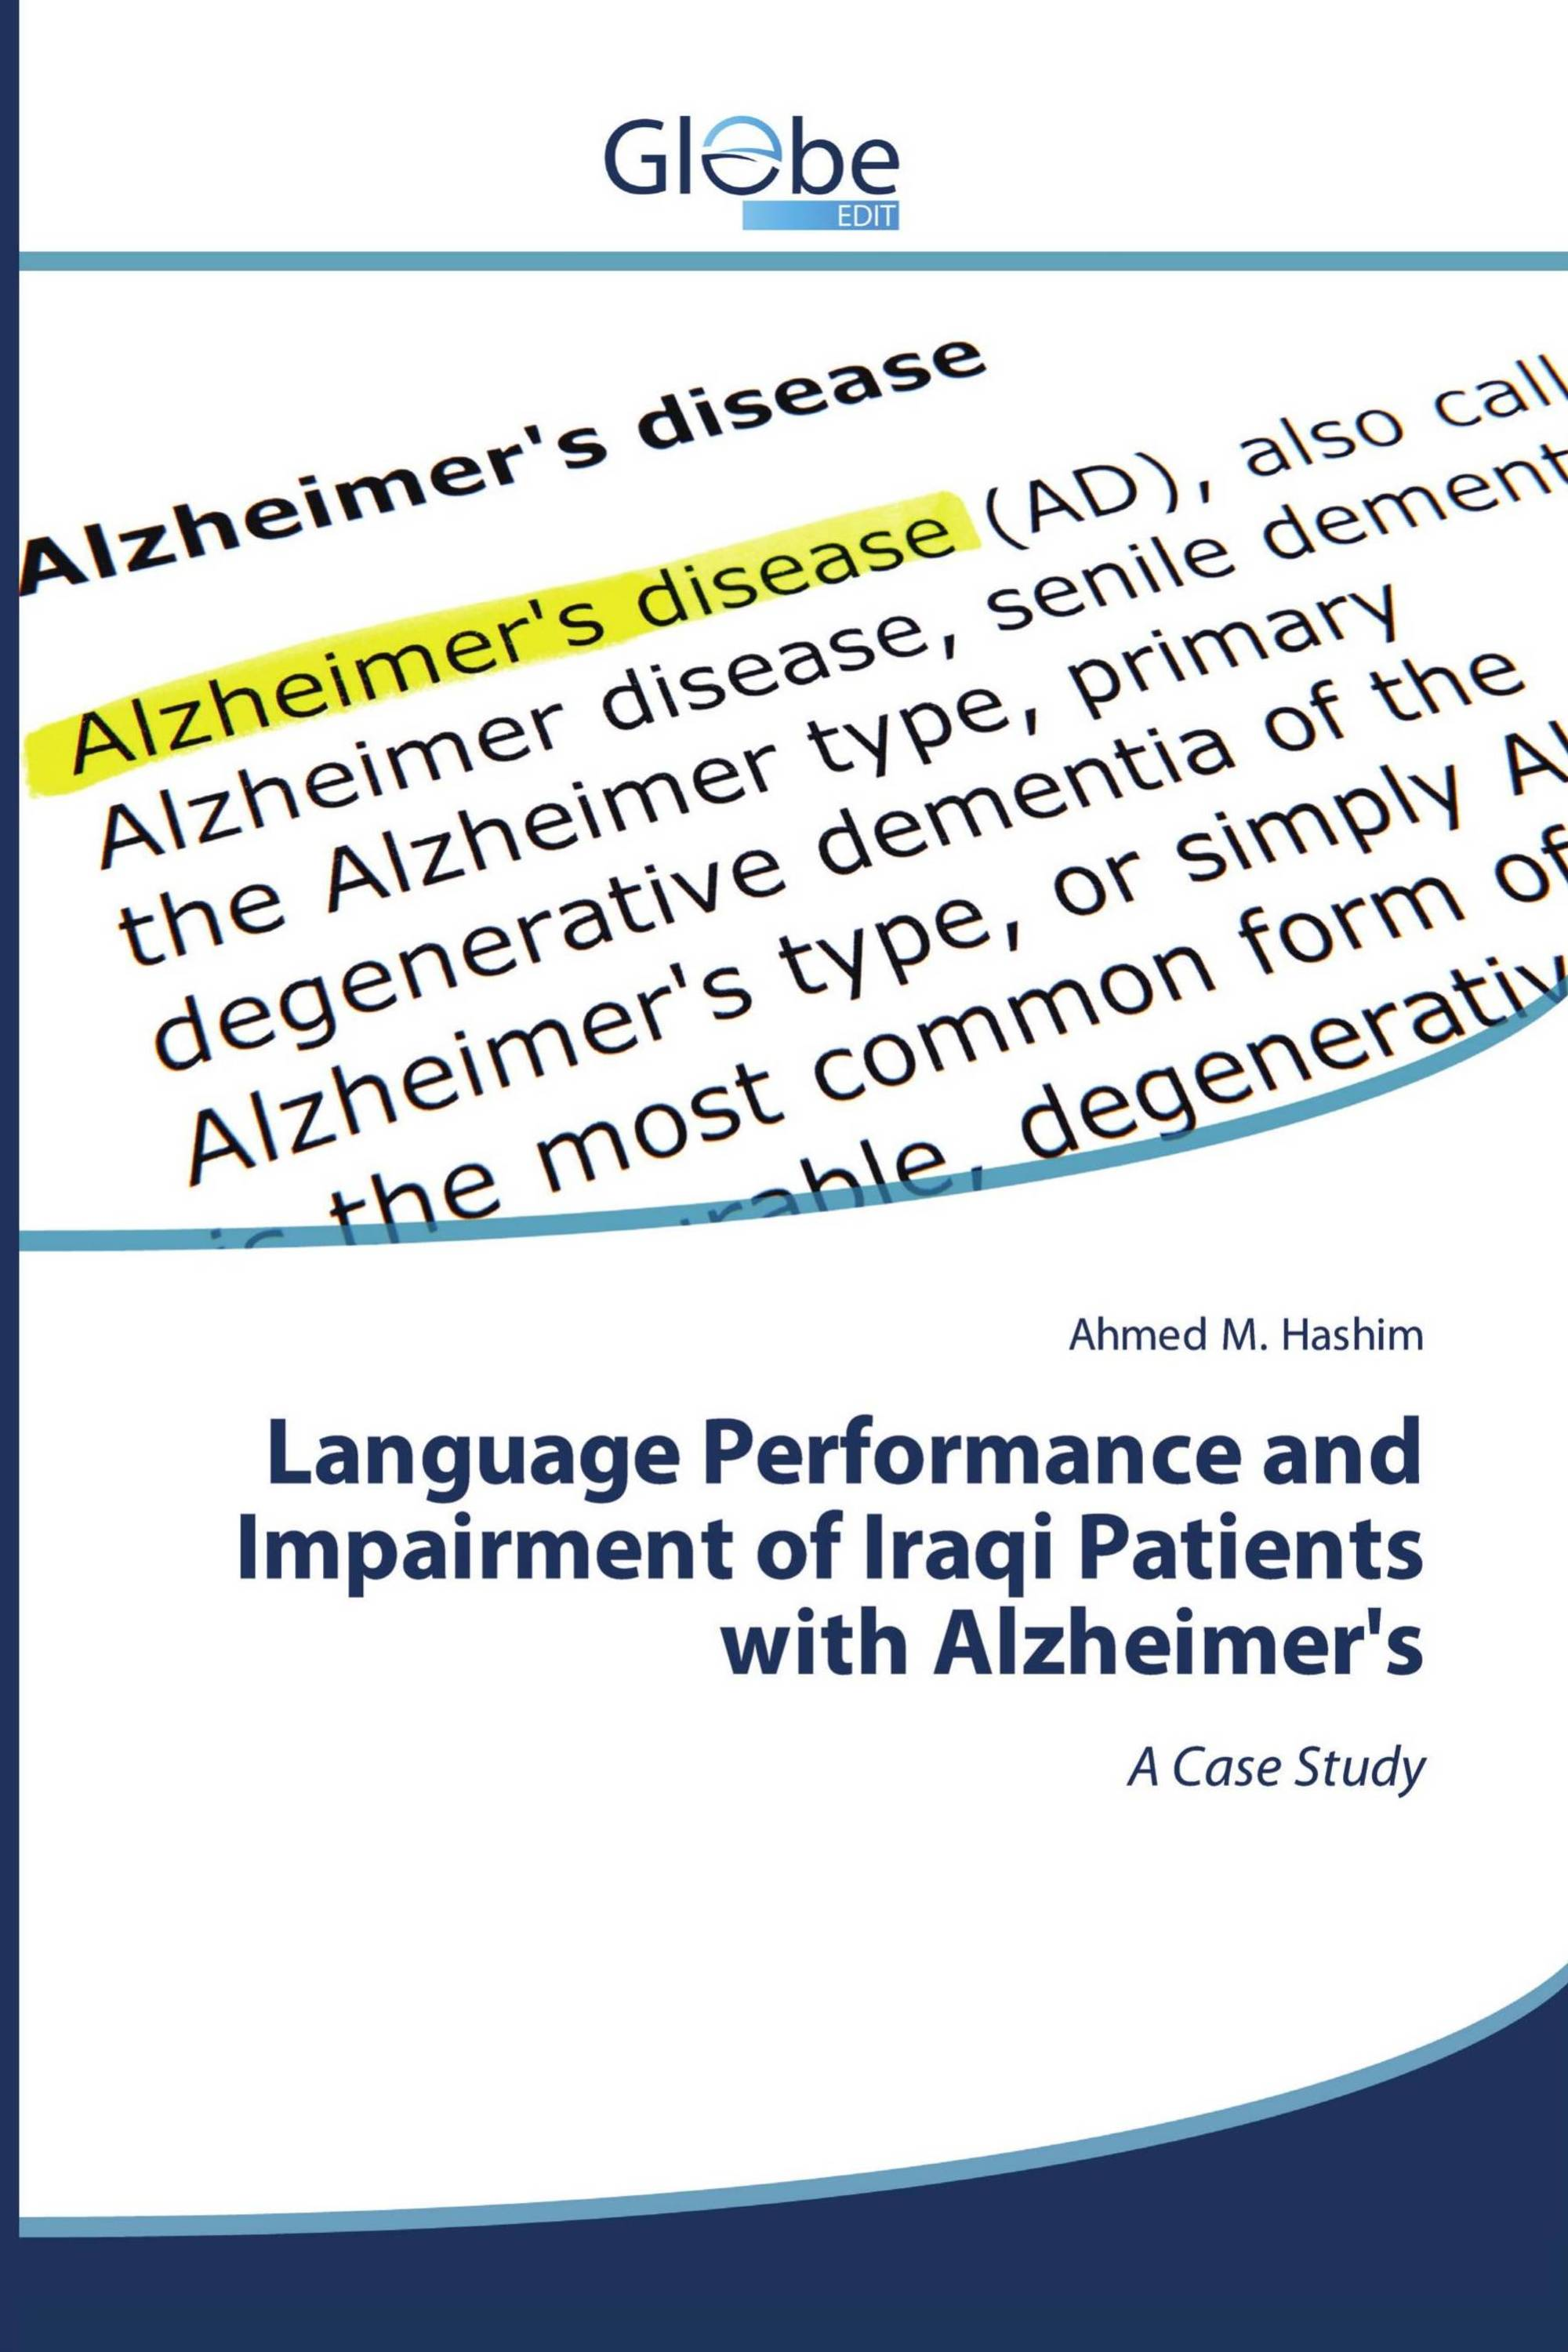 Language Performance and Impairment of Iraqi Patients with Alzheimer's